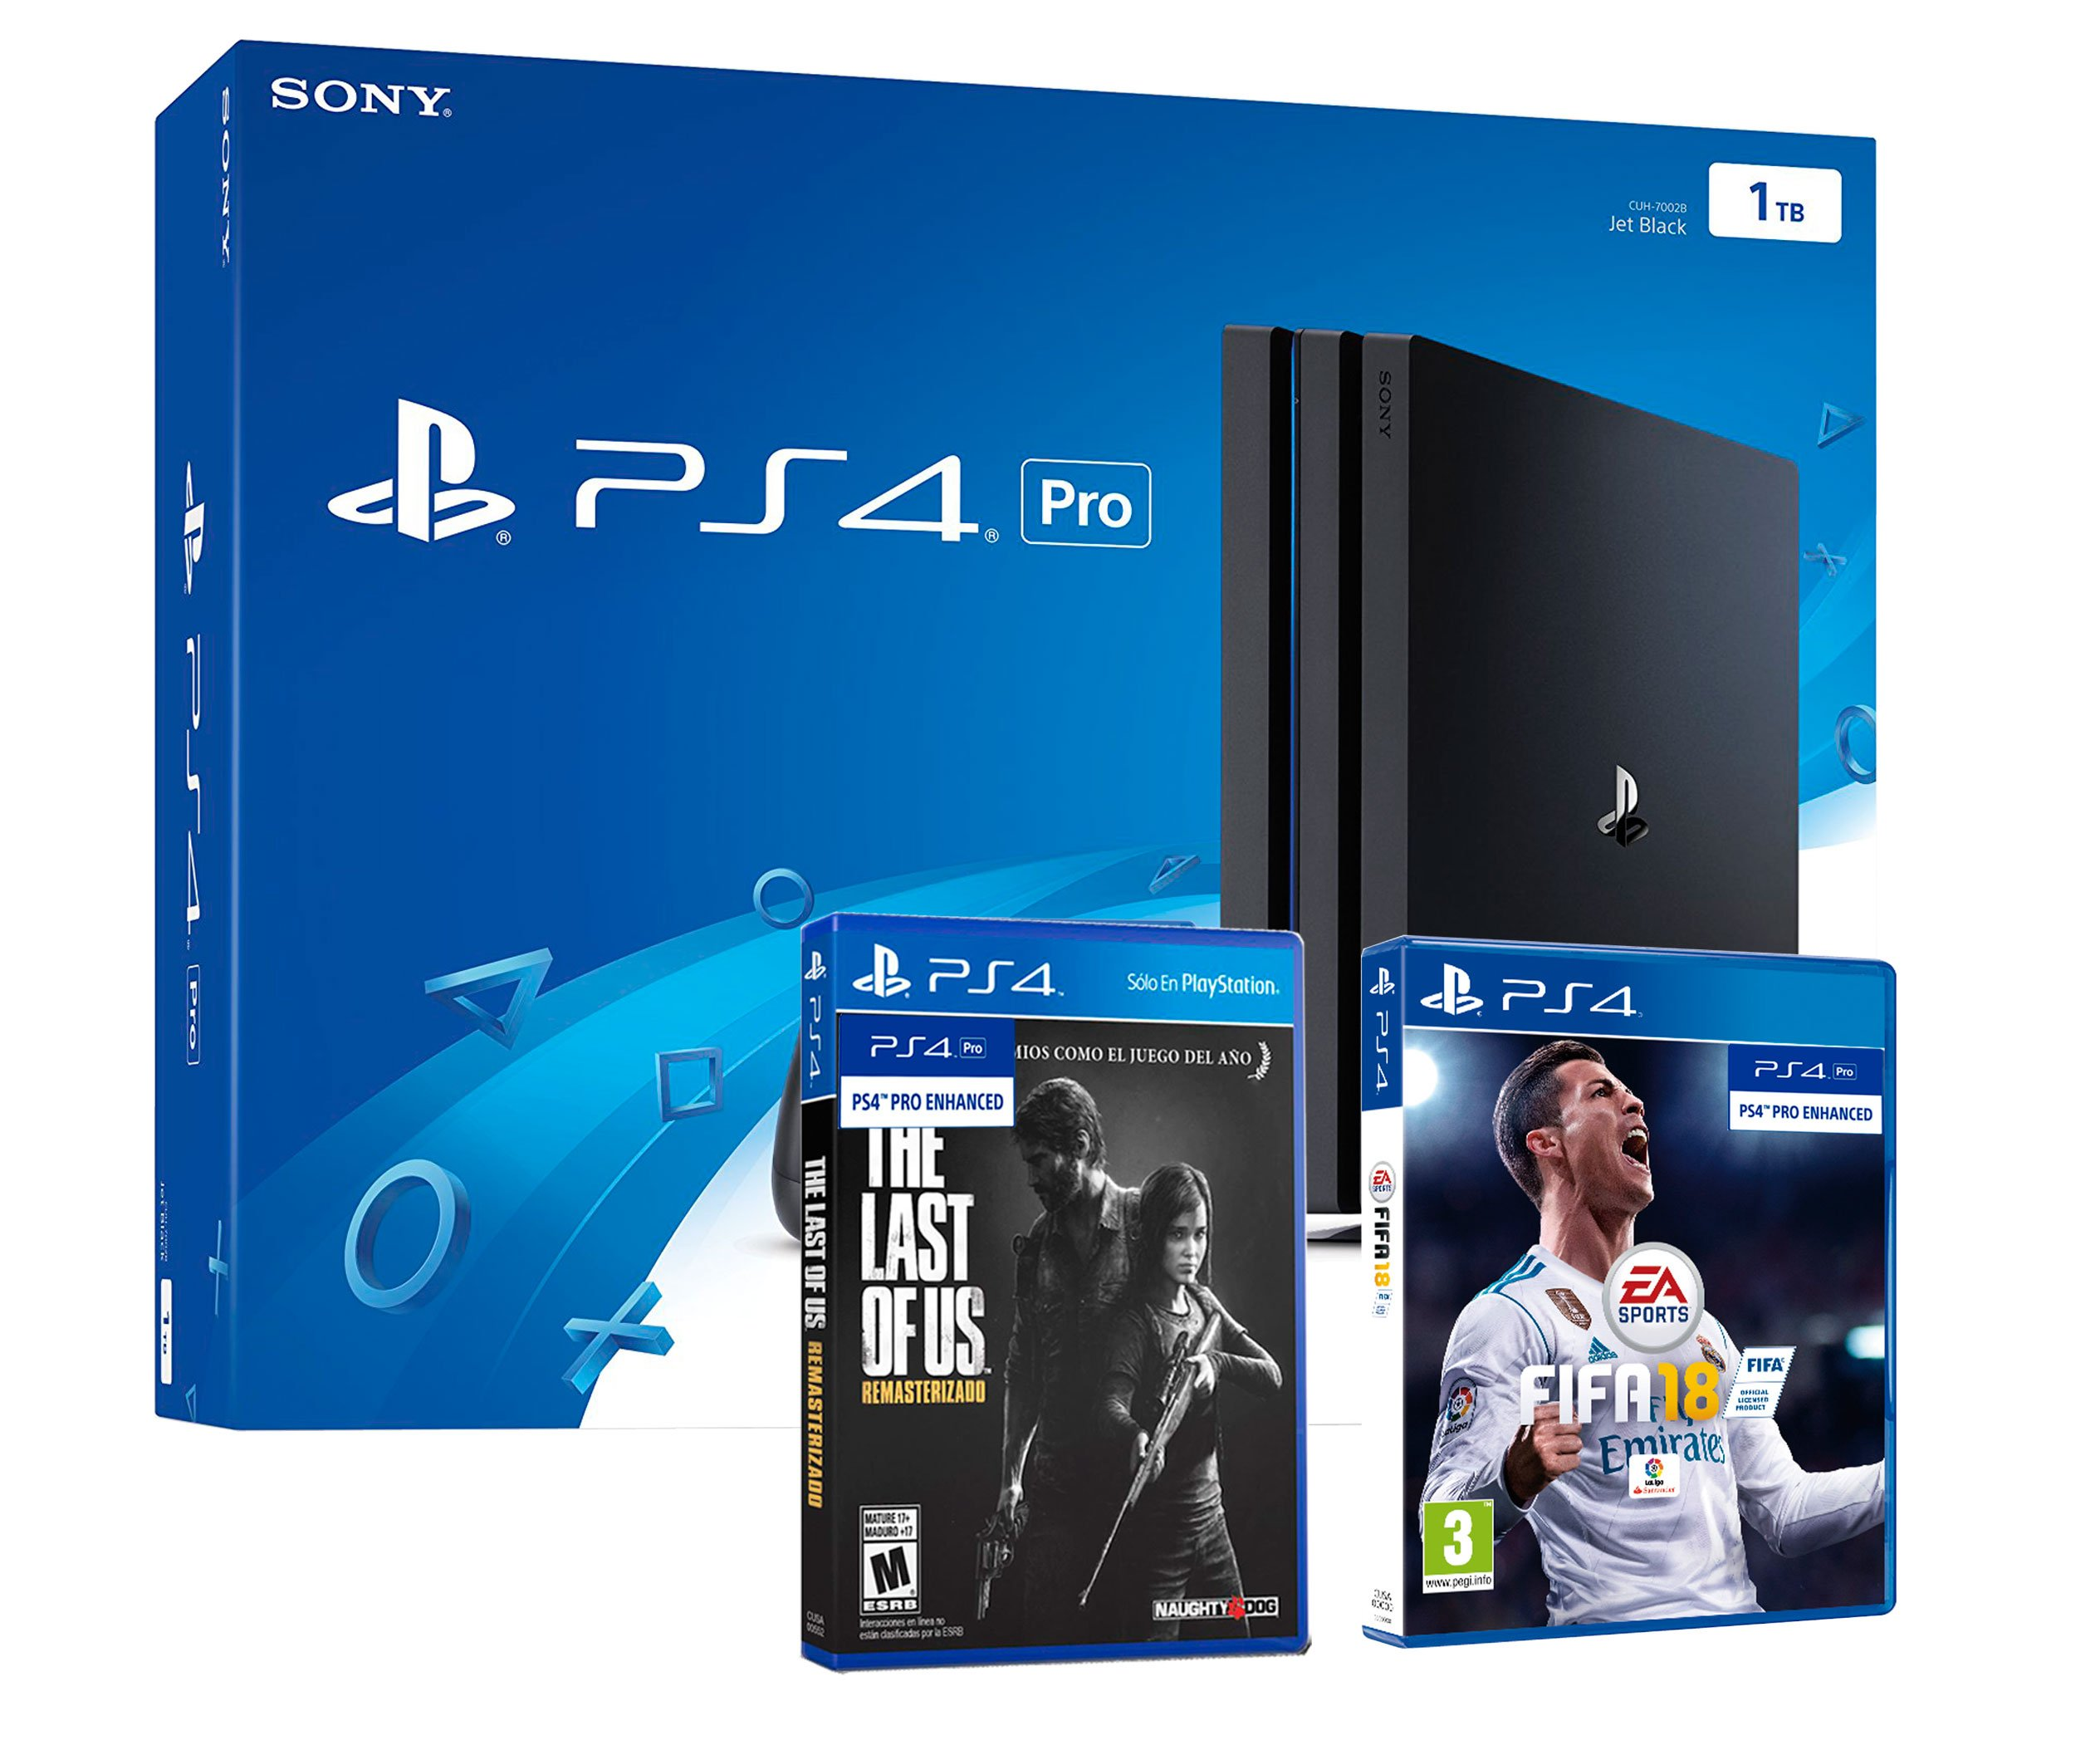 PS4 Pro 1TB Playstation 4 - Pack 2 Juegos 4K - FIFA 18 + The Last of Us: Remastered: Amazon.es: Videojuegos